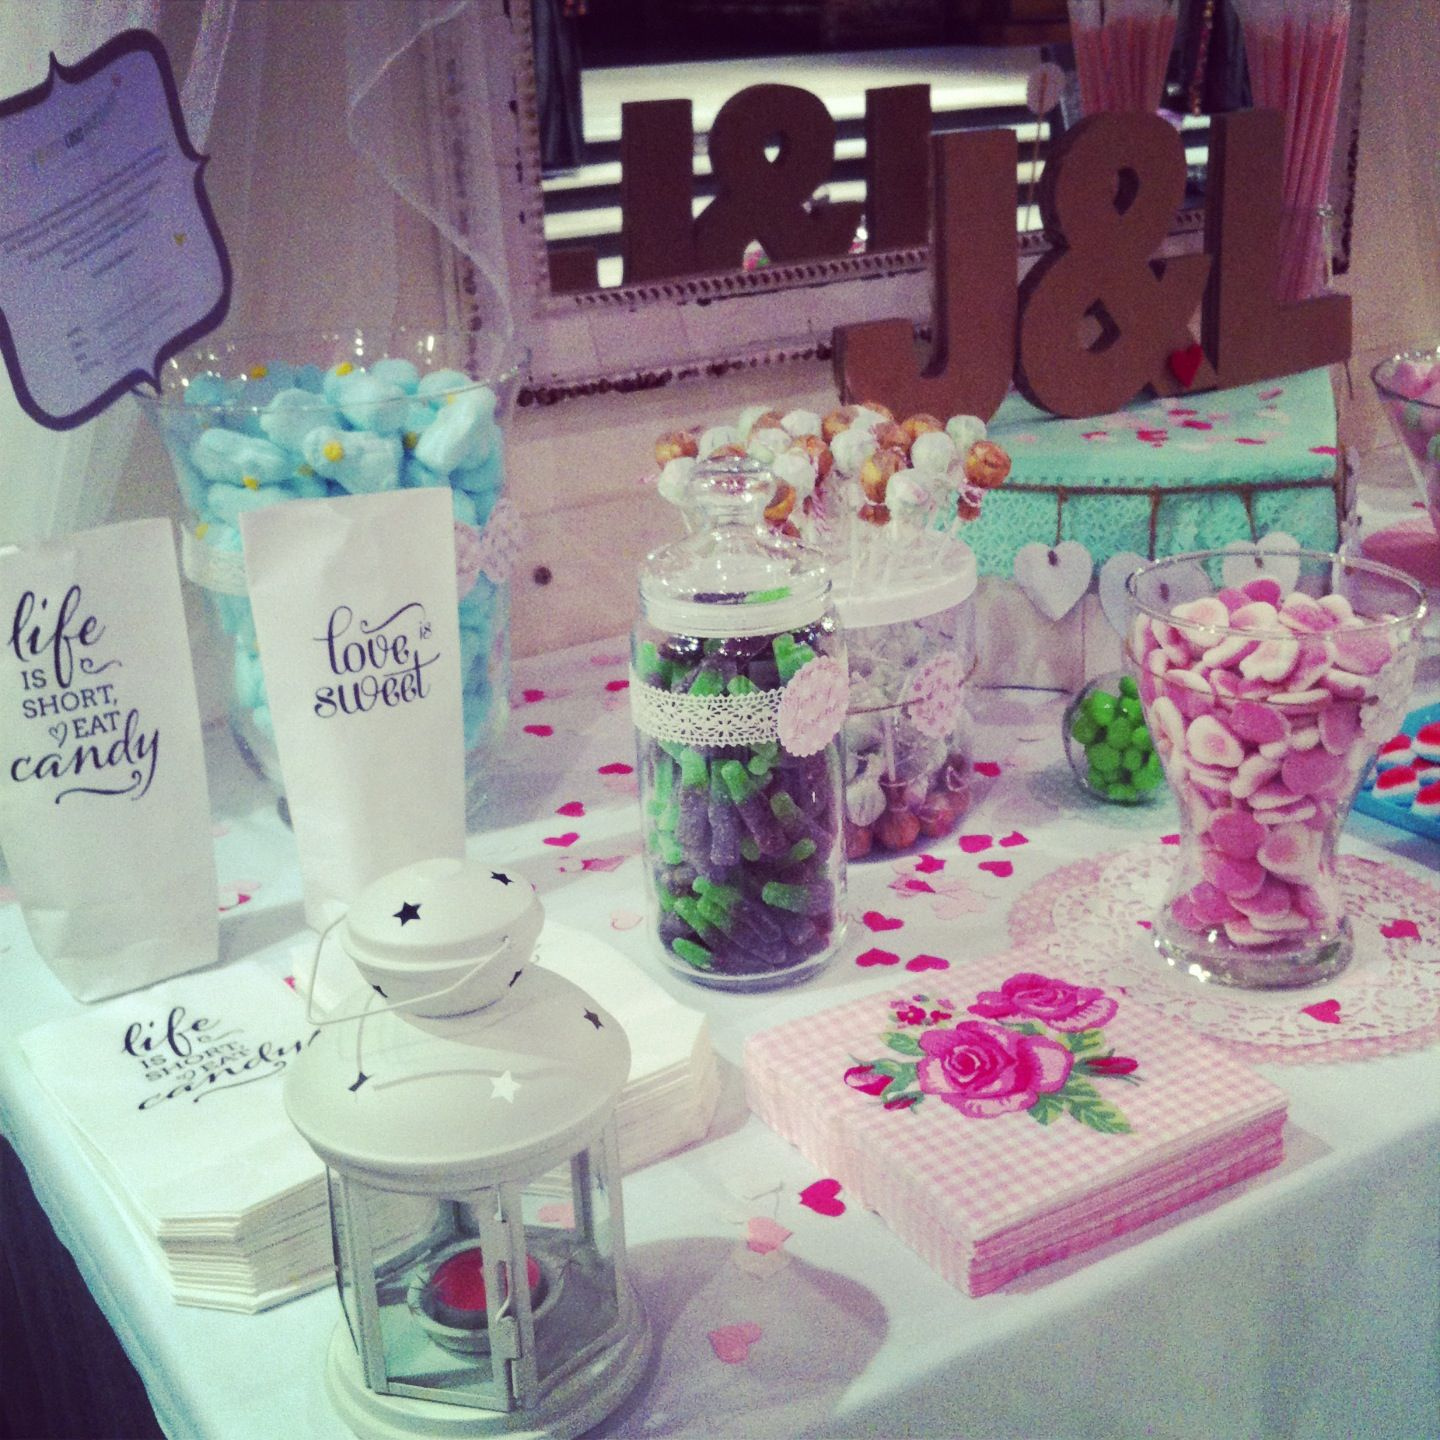 Our candy buffet x Lorena & Jon wedding!!